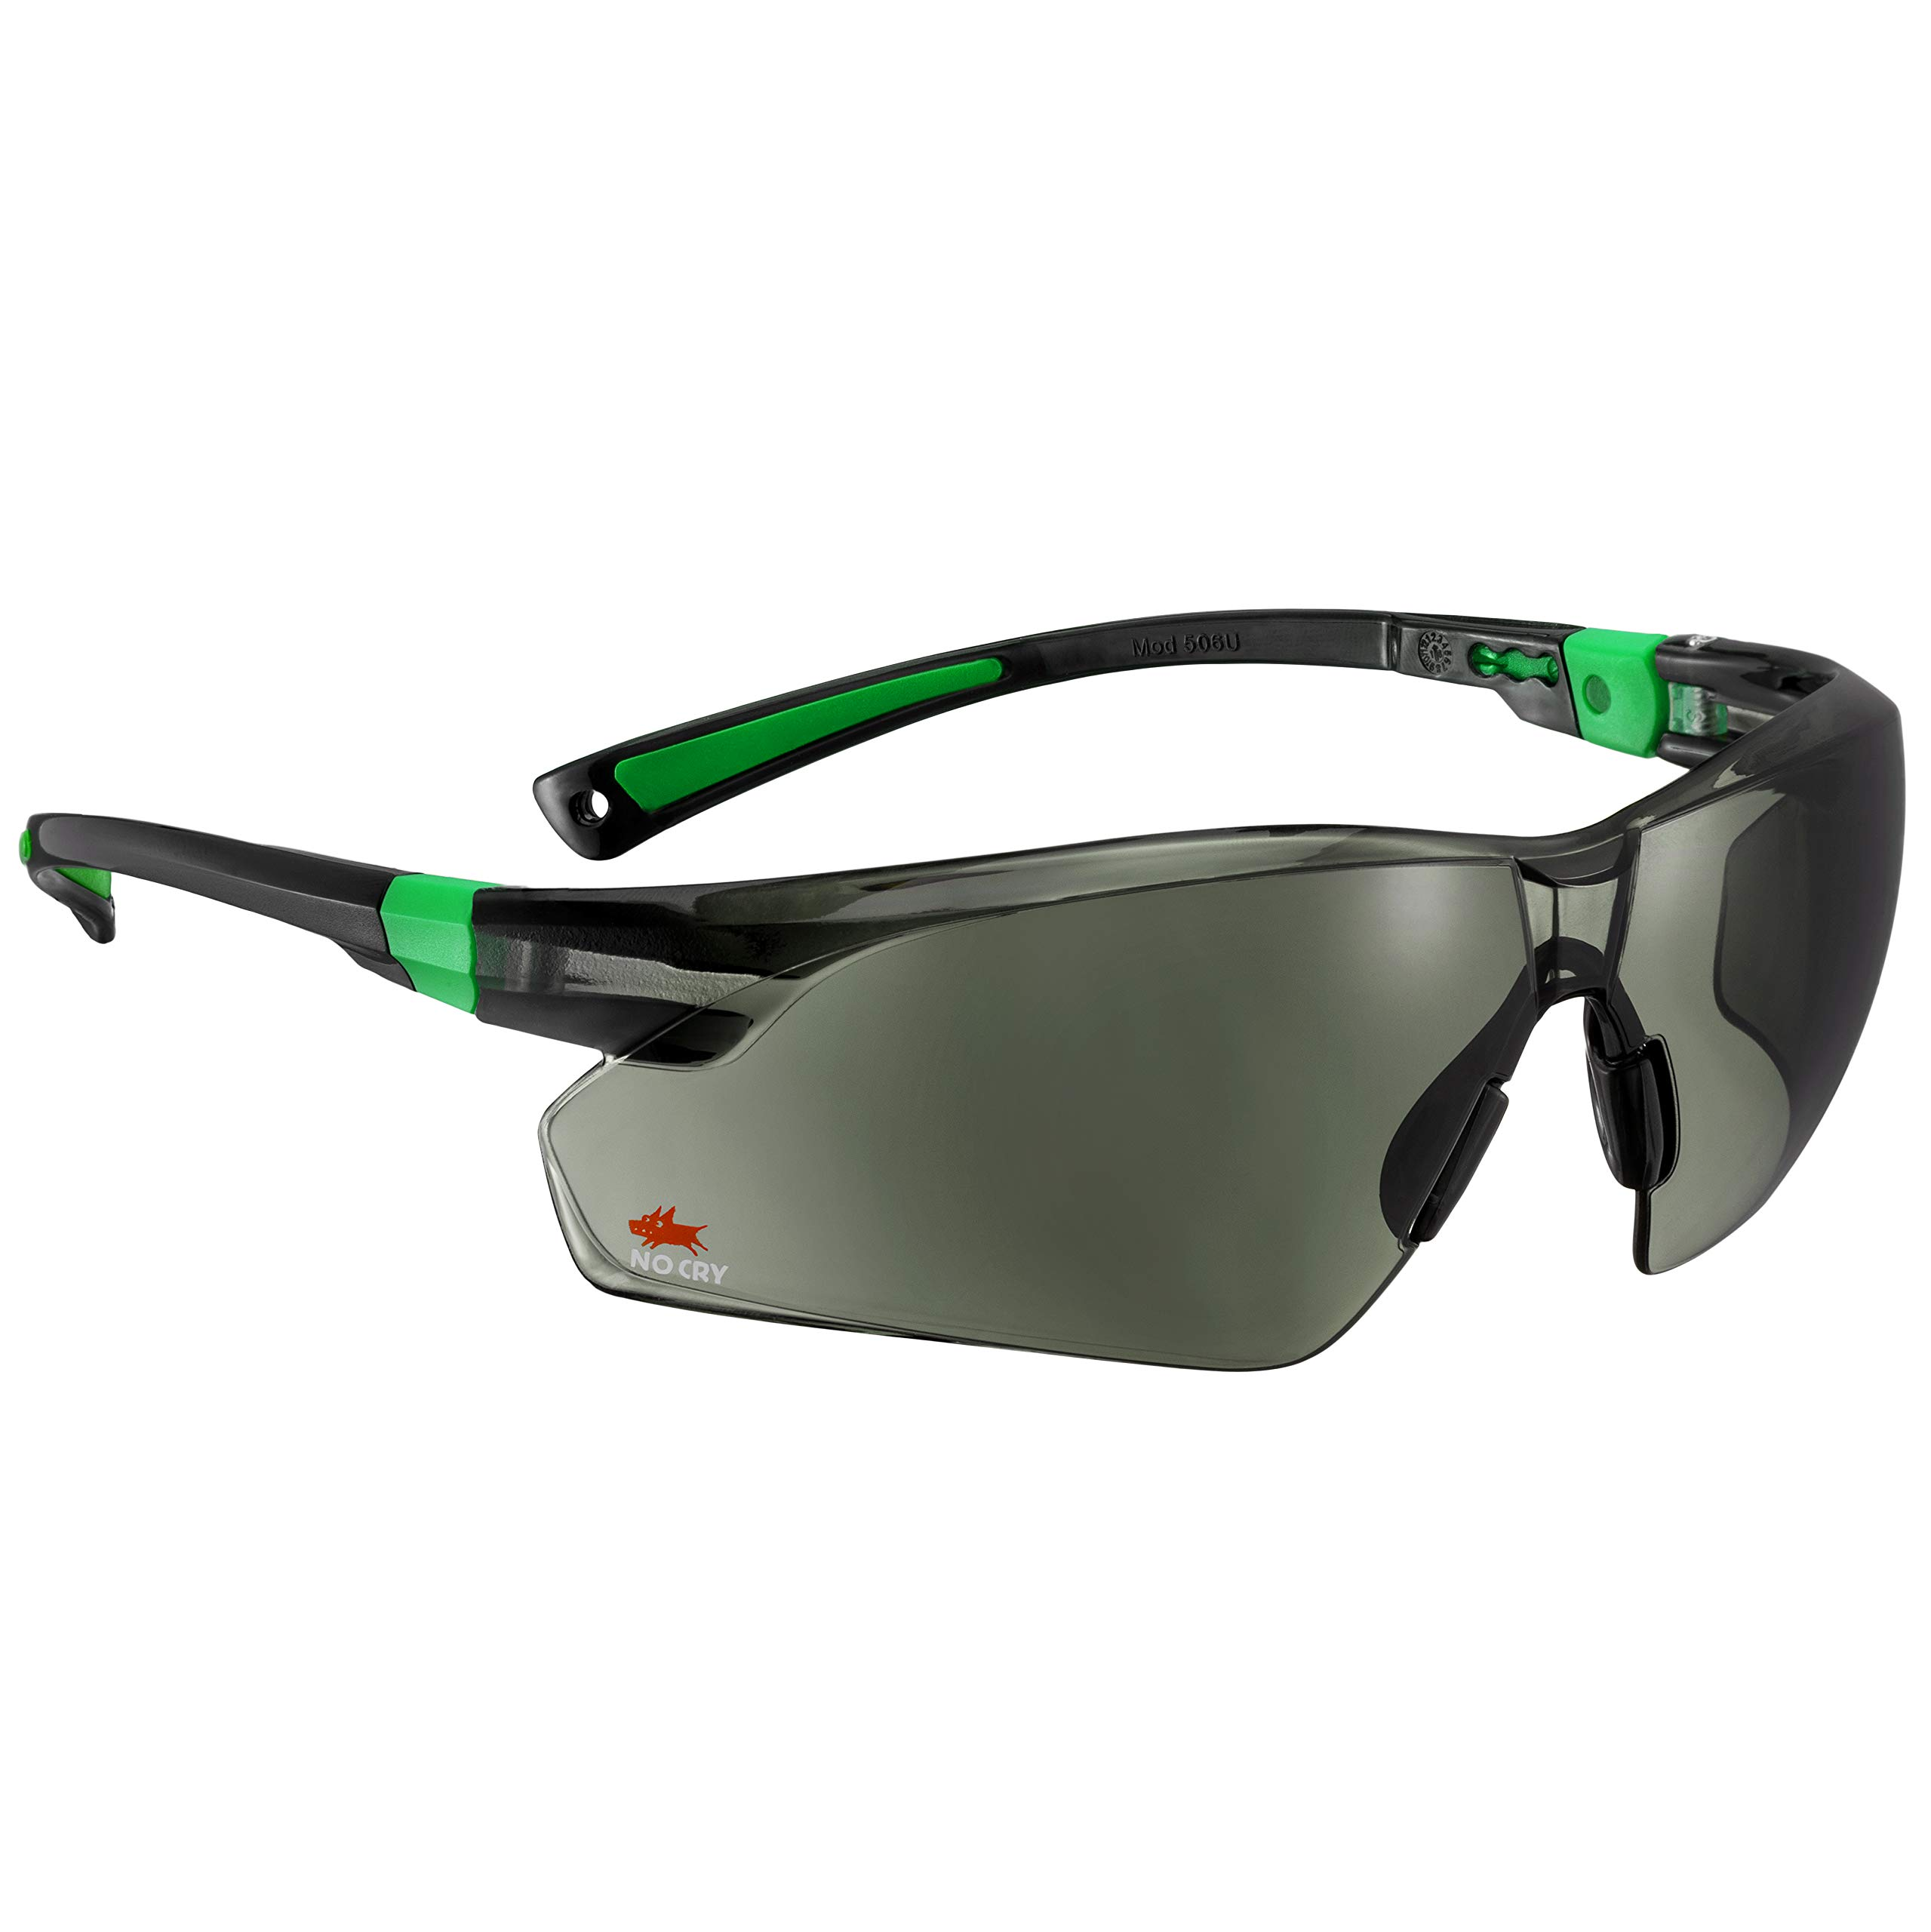 9c2bdcd361 NoCry Work and Sports Safety Sunglasses with Green Tinted Scratch Resistant  Wrap-Around Lenses and